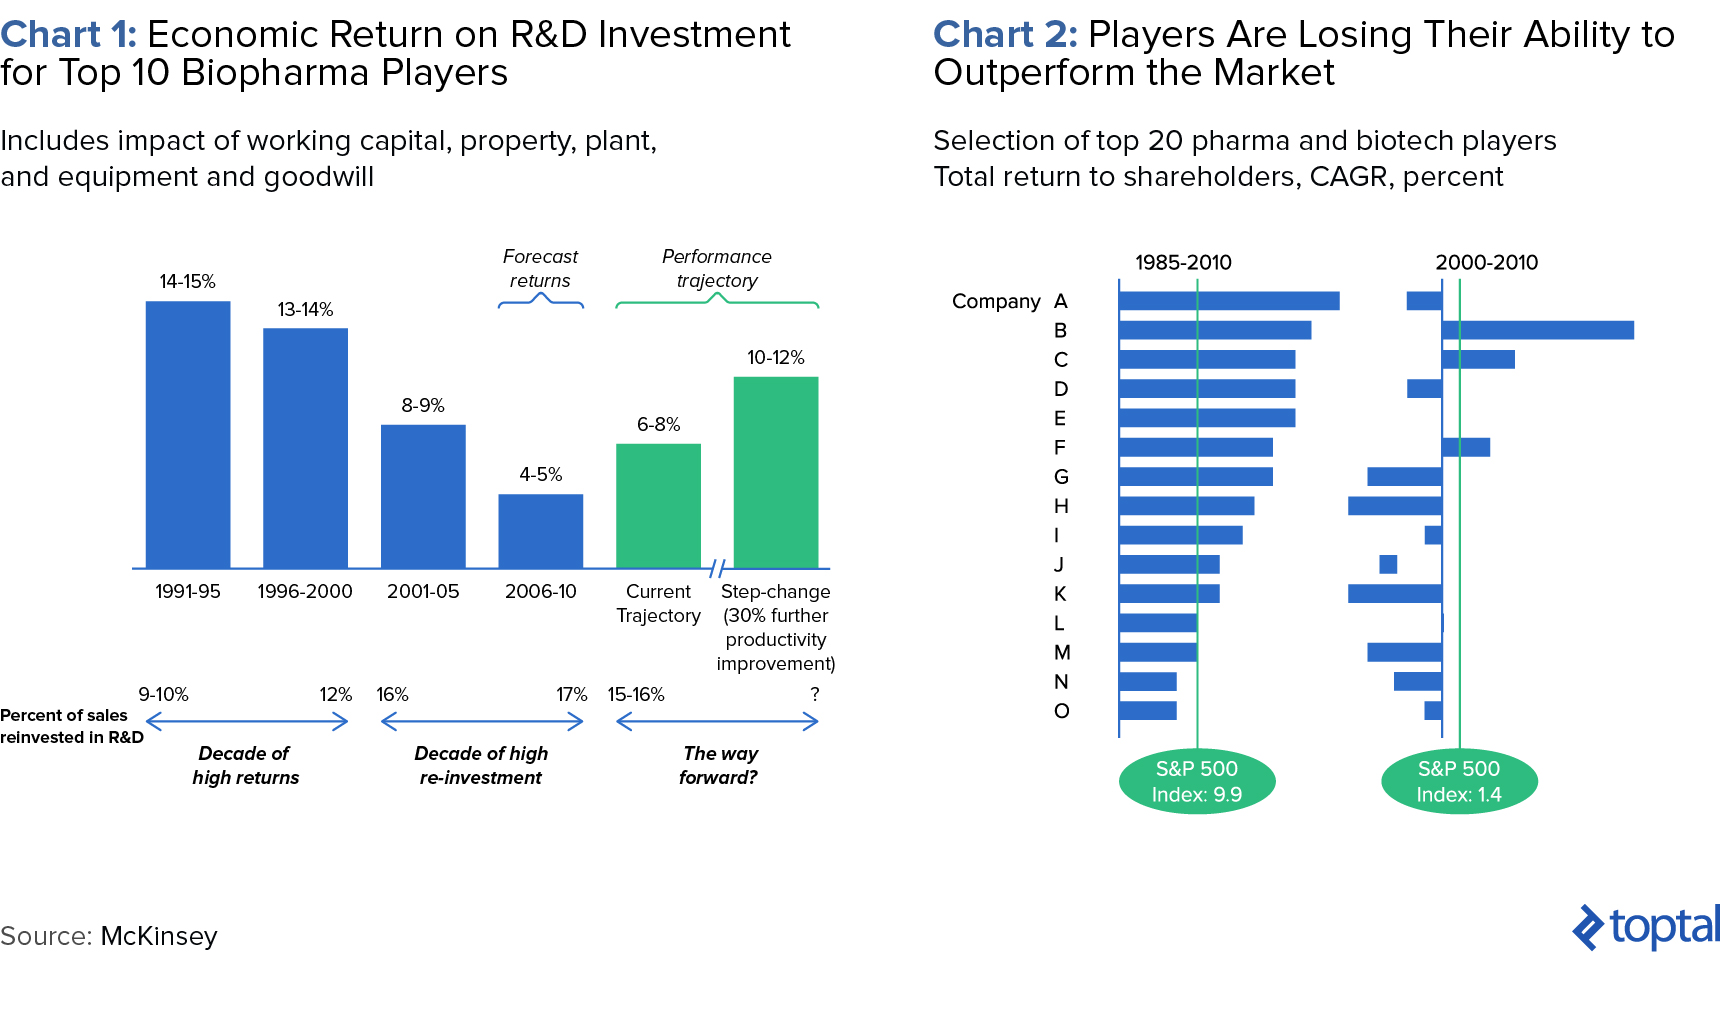 Chart 1: Economic Return on R&D Investment for Top 10 Biopharma Players, and Chart 2: Players Are Losing Their Ability to Outperform the Market